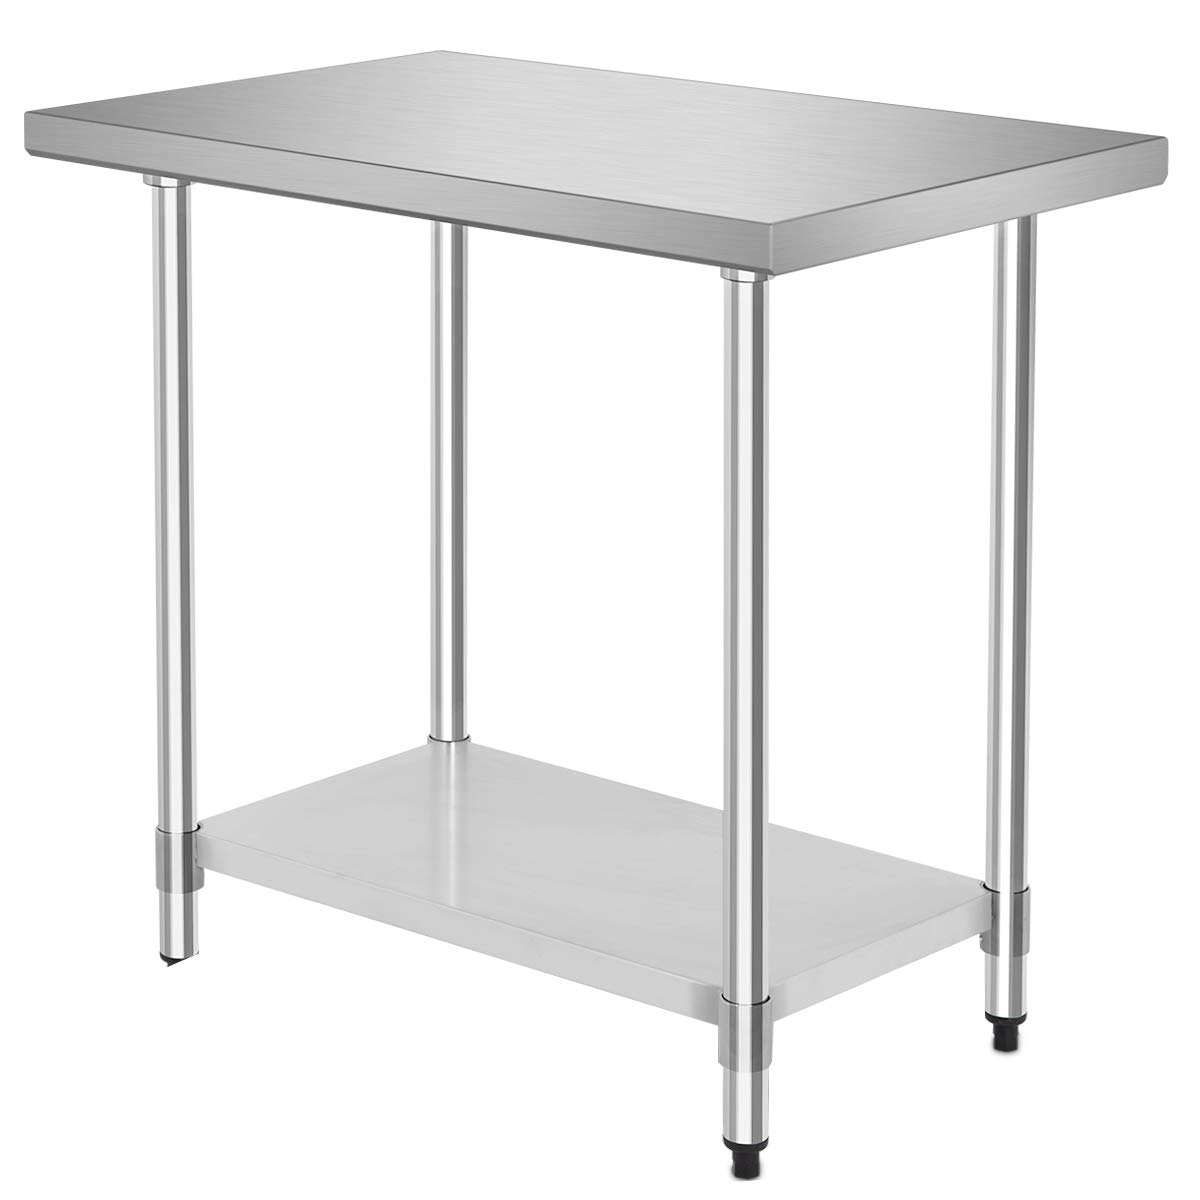 """36"""" x 24"""" NSF Stainless Steel Food Prep Table, Heavy Duty Commercial Kitchen Food Prep Table & Work Table, Wheels Installable, Adjustable Shelf, by WATERJOY"""